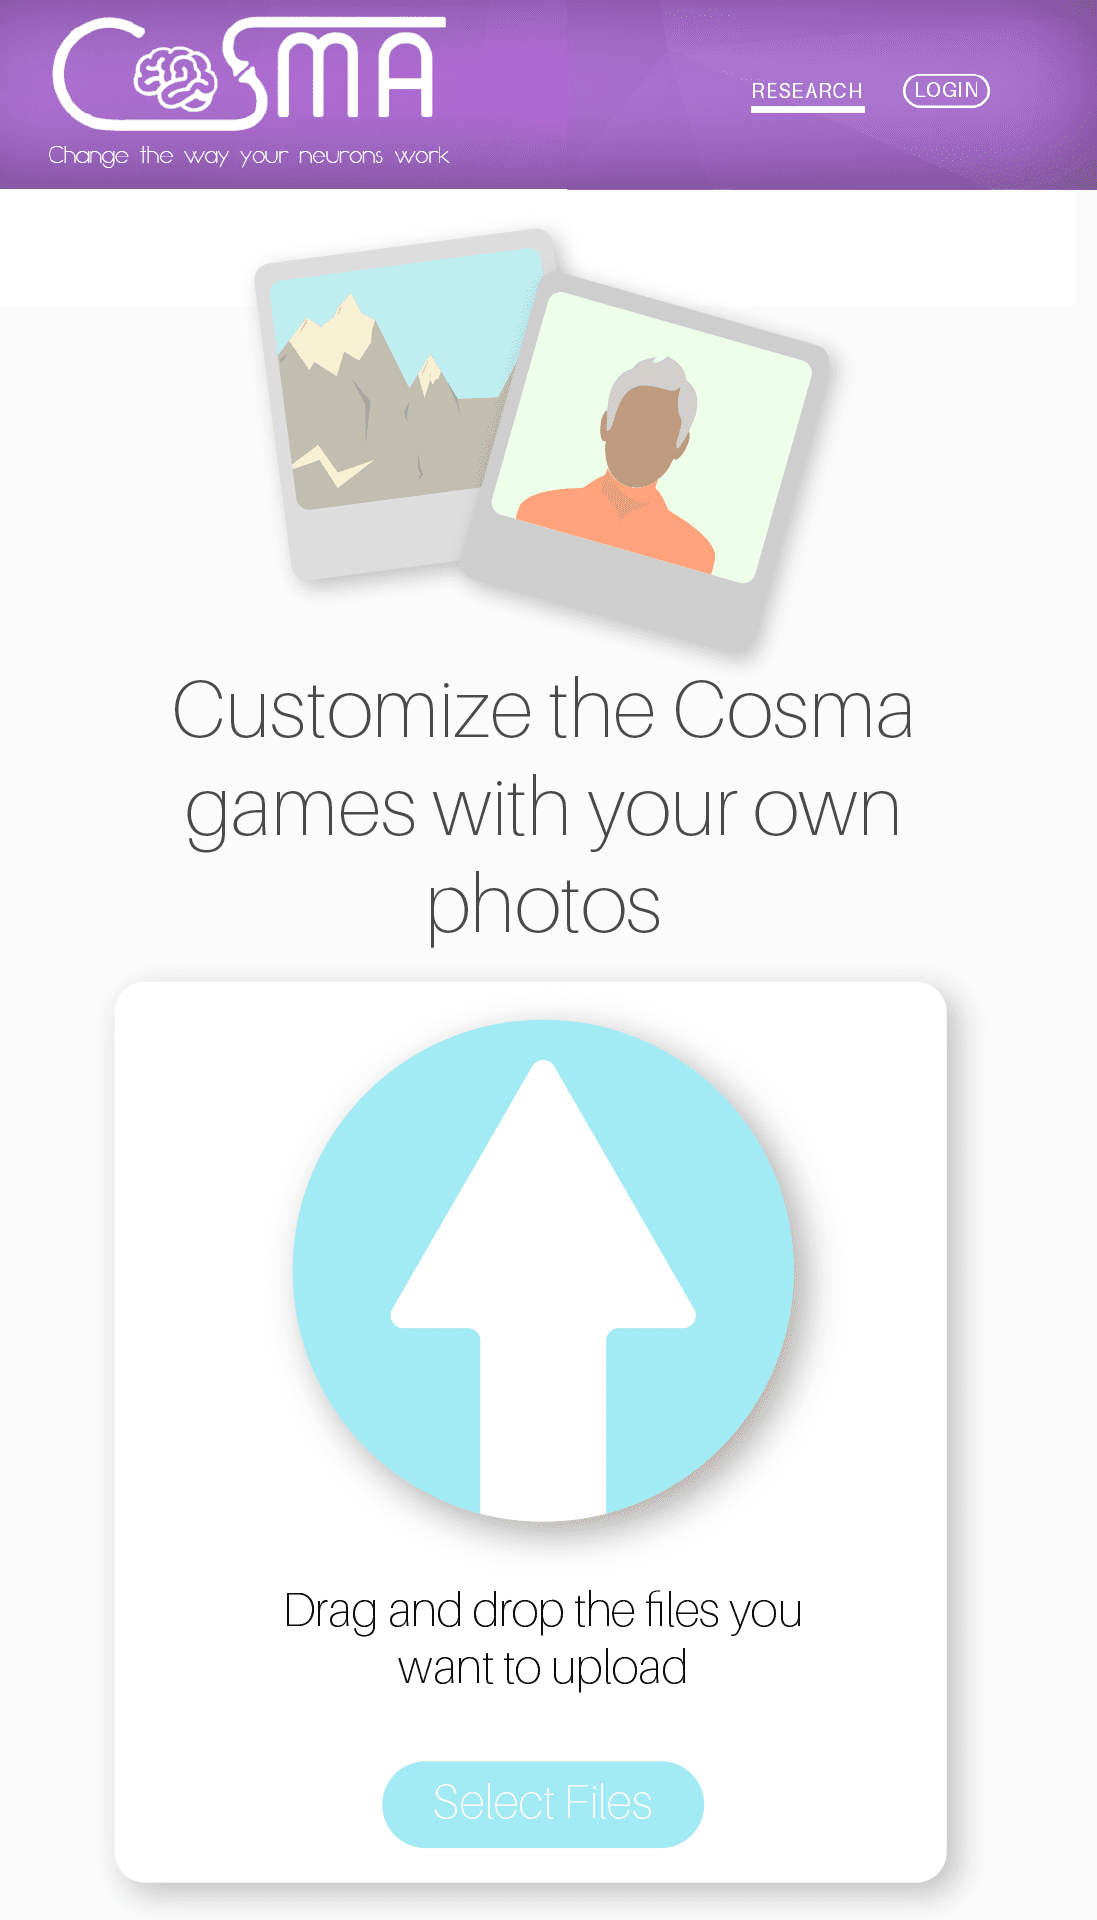 Personalise COSMA – Upload your own photos, images and memories